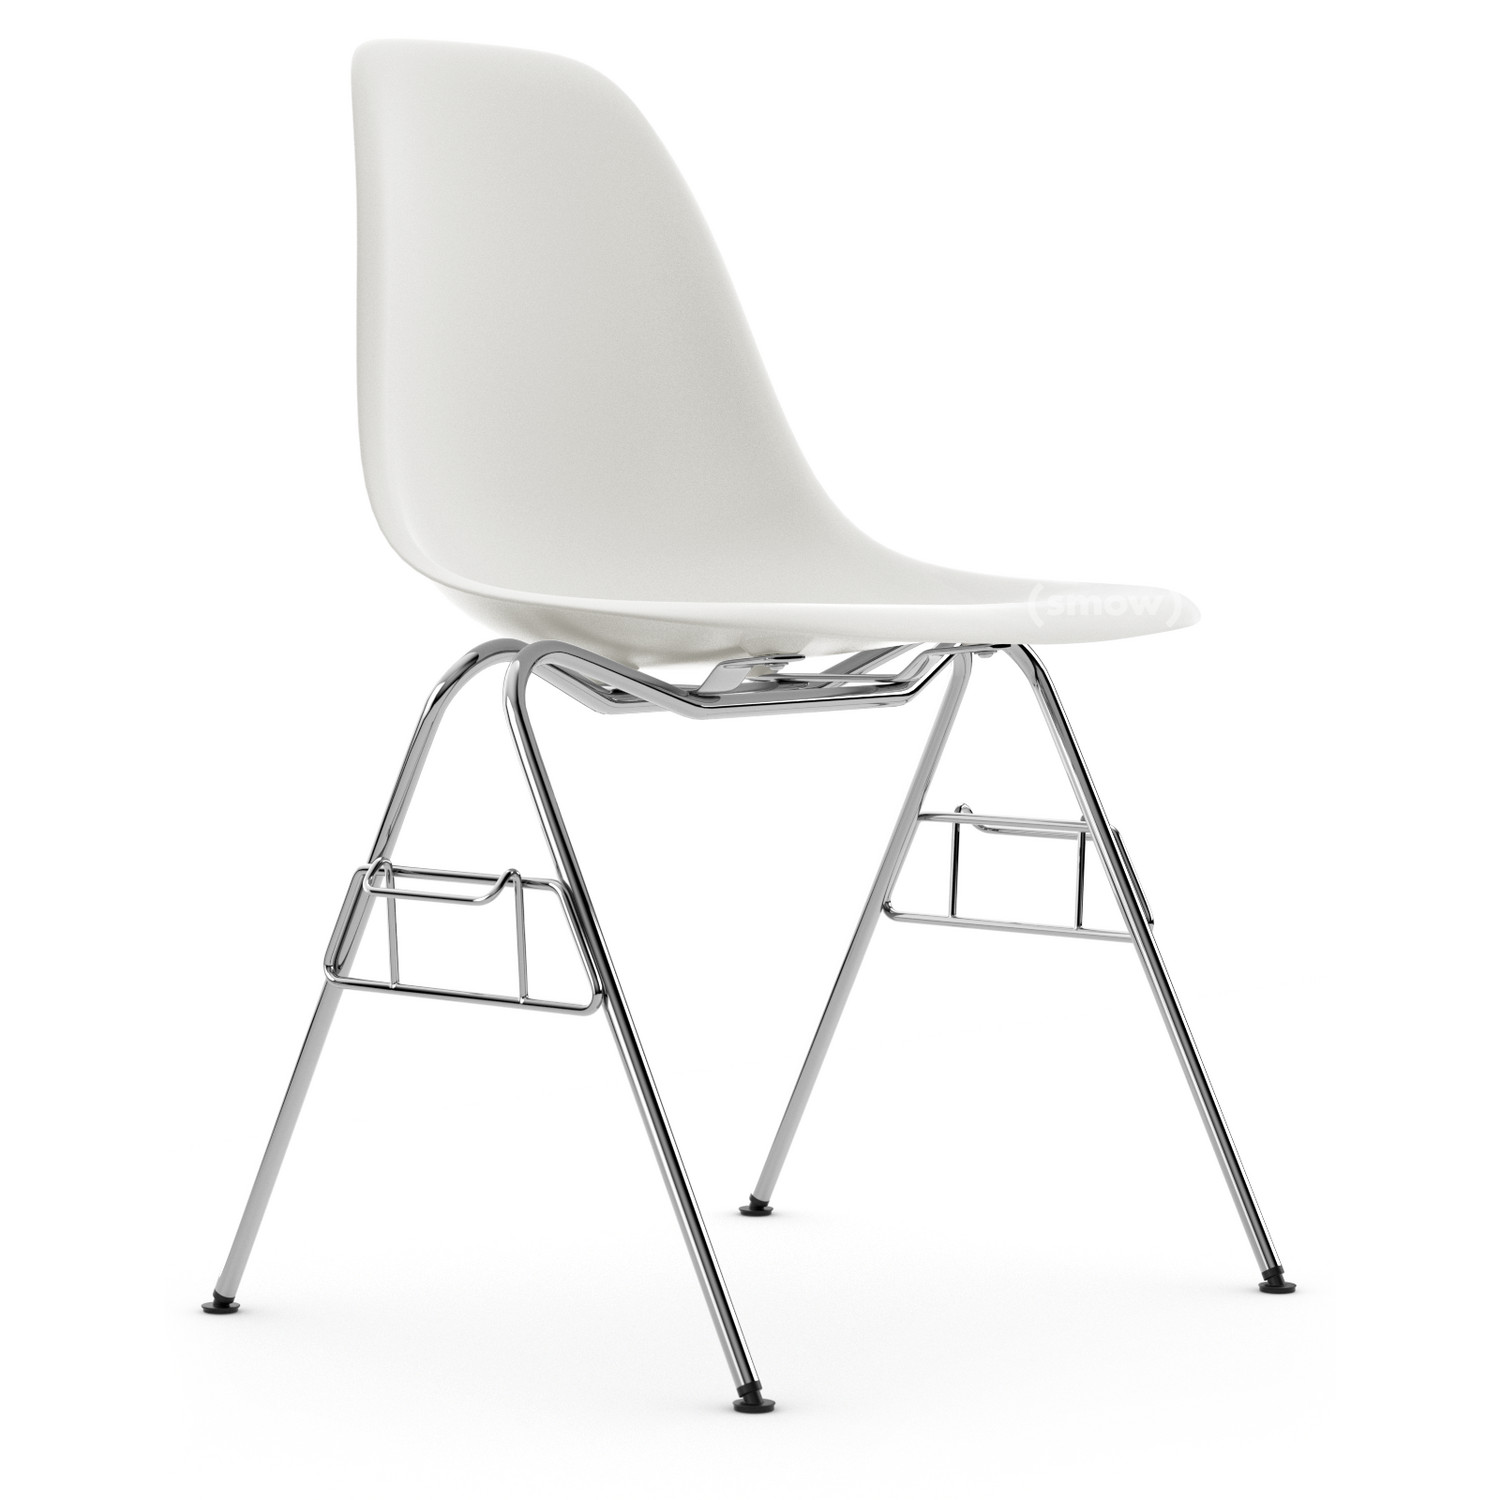 Vitra Eames Plastic Side Chair DSS White Without upholstery